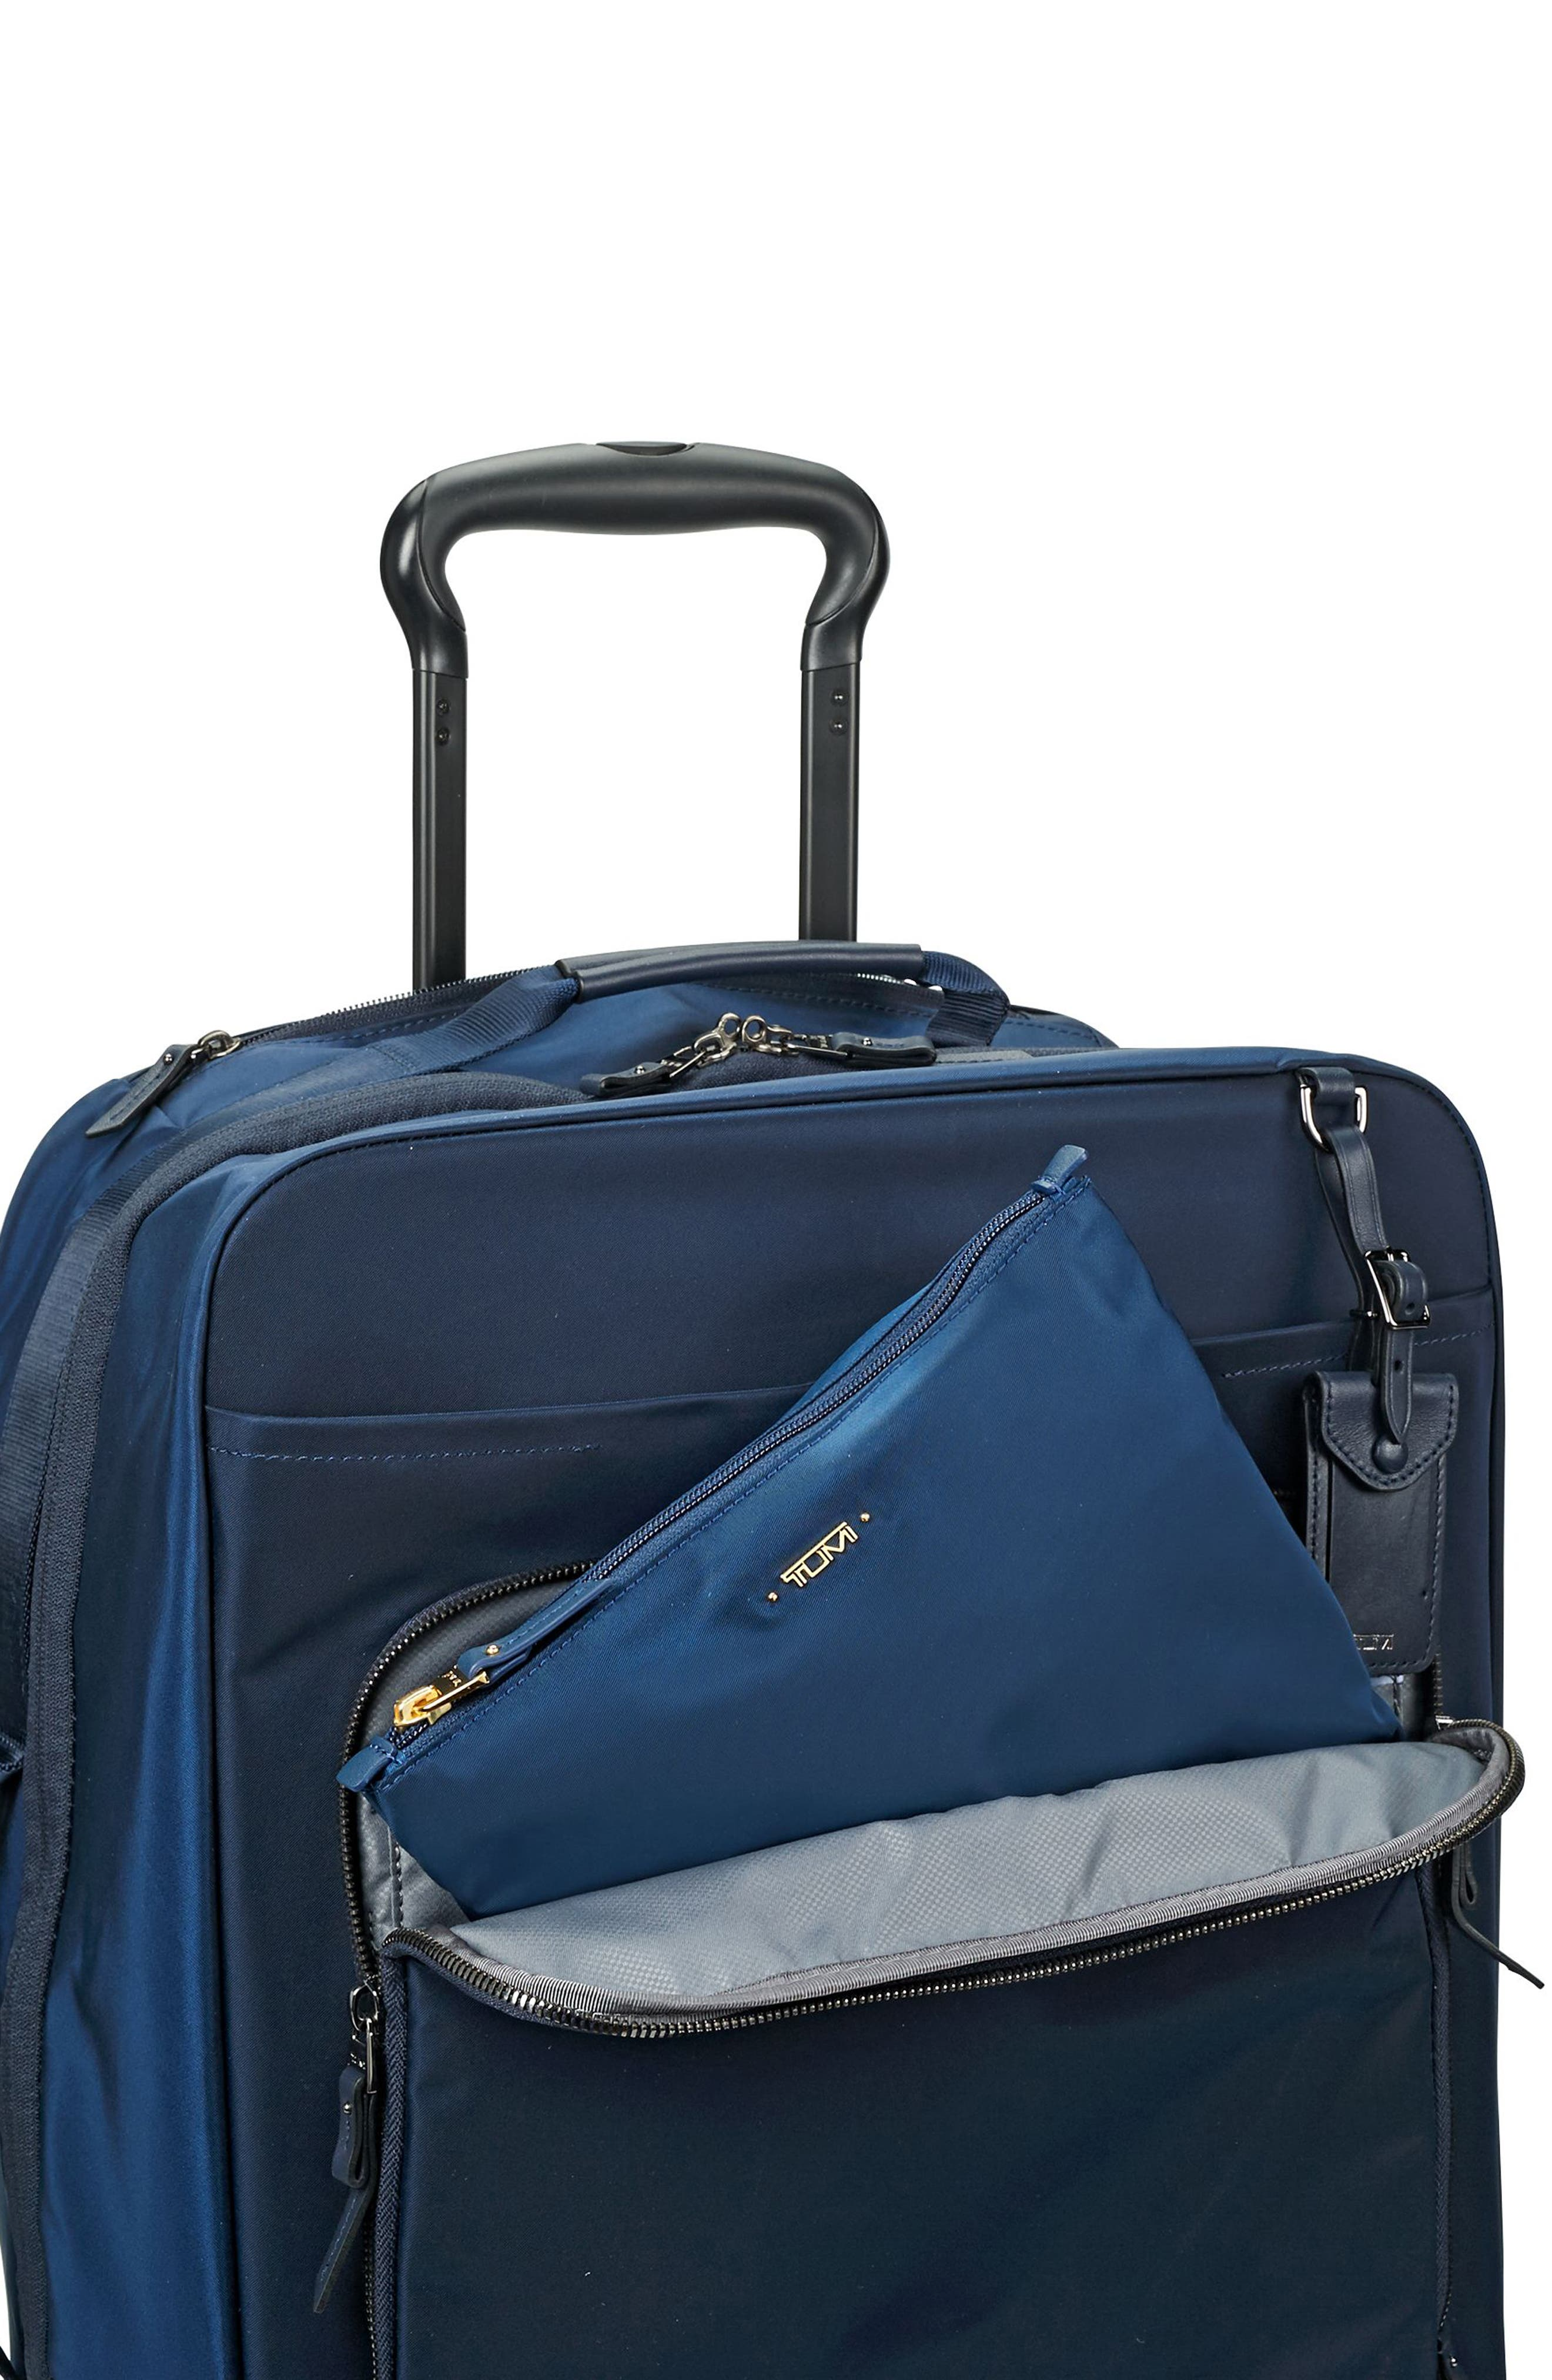 Just in Case<sup>®</sup> Back-Up Tavel Bag,                             Alternate thumbnail 3, color,                             Ocean Blue